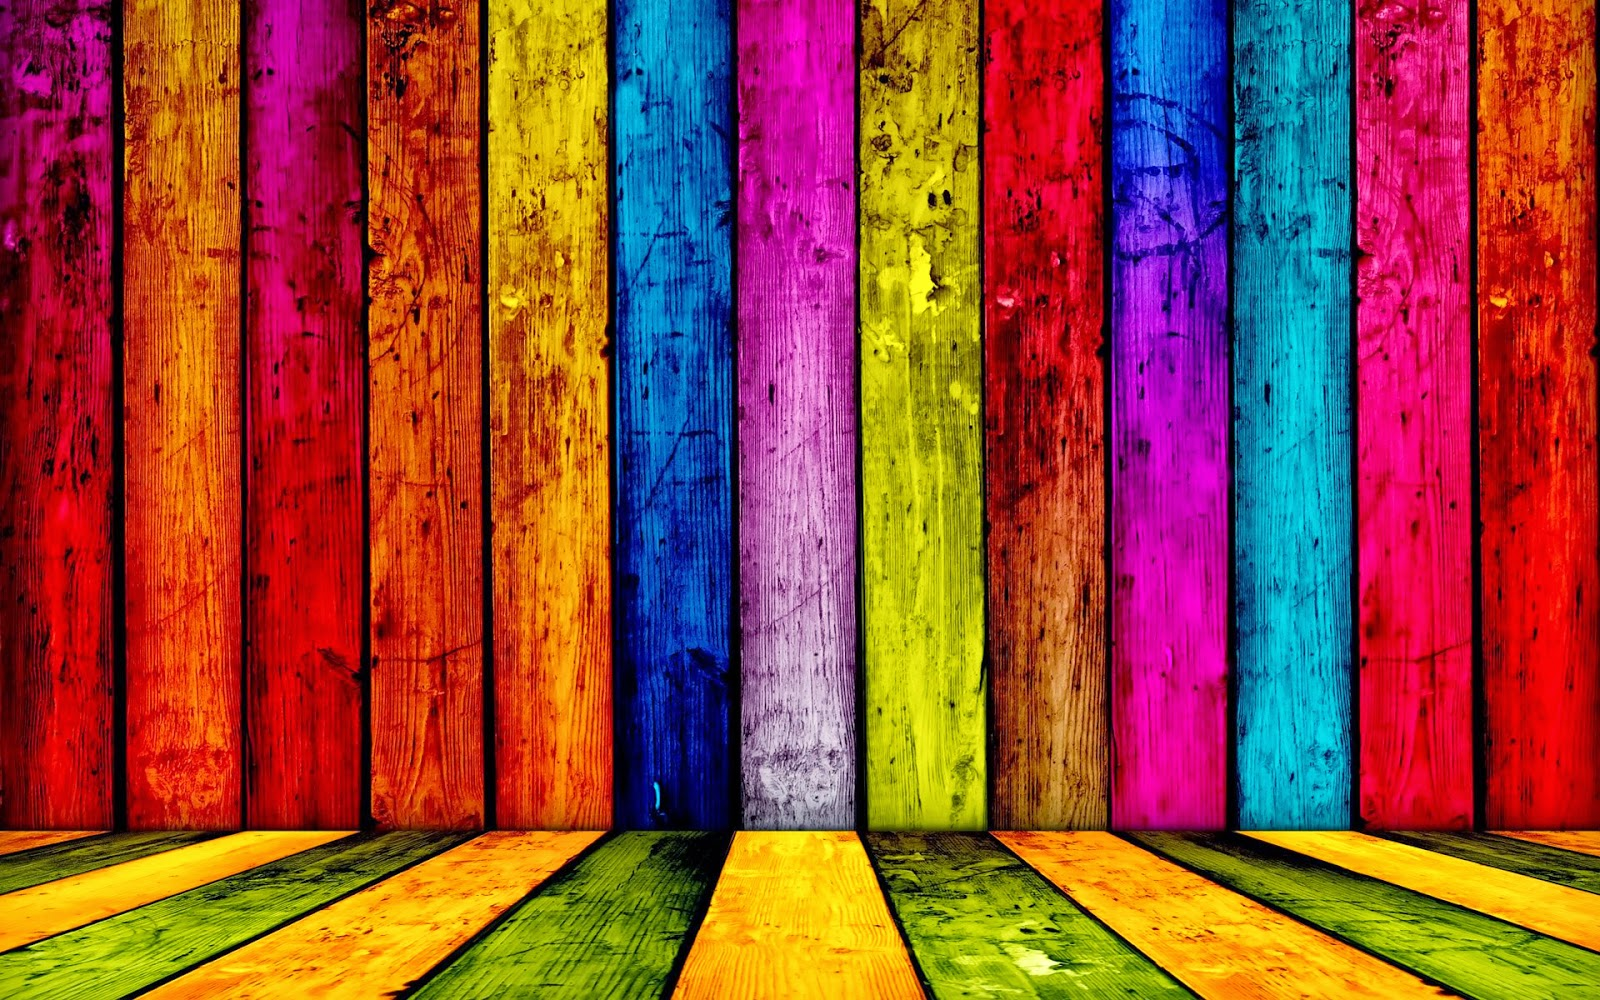 Colorful Food Wallpaper Free Download: Colorful Wallpapers Full HD, Download Colorful HD